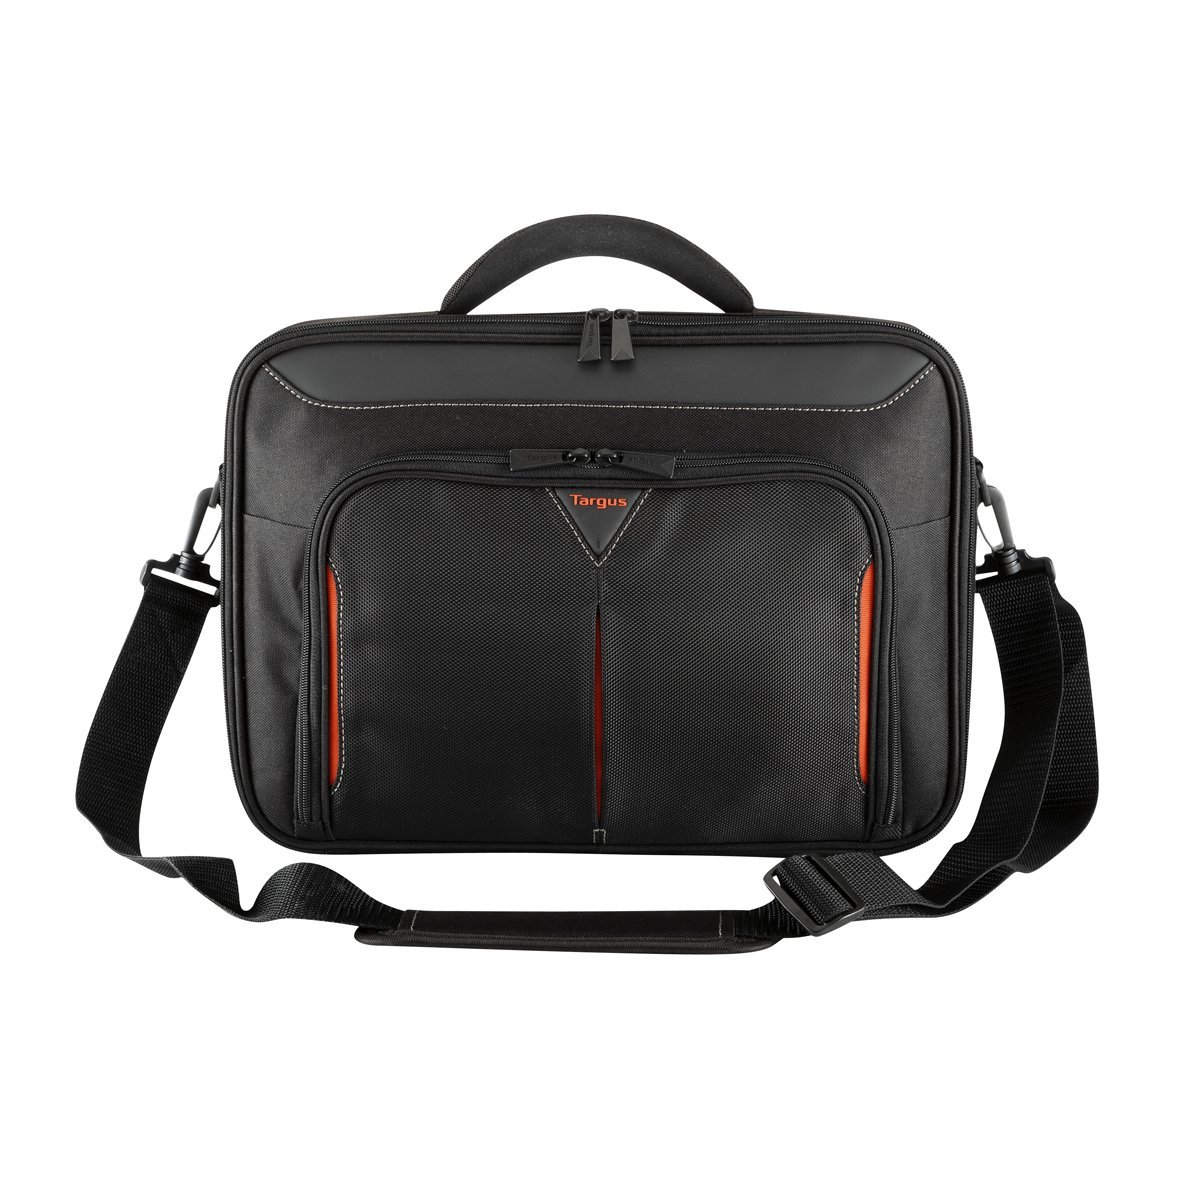 Targus Classic Clamshell Laptop Bag specifically designed to fit up to 17-18-Inch 87f024b0edee7